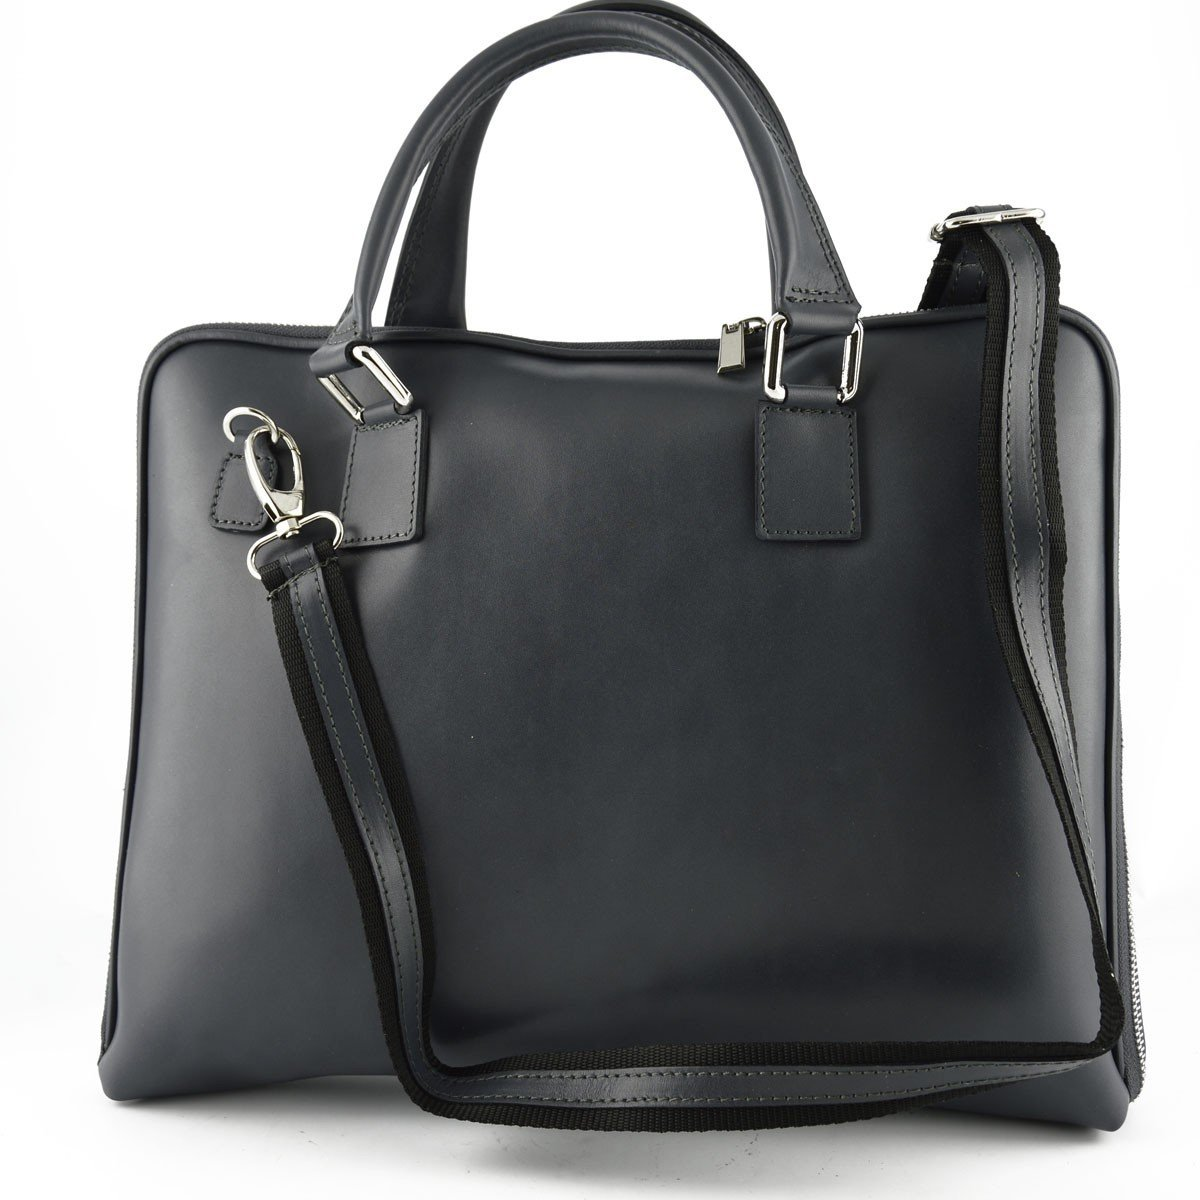 Made In Italy Genuine Leather Woman Briefcase Color Dark Grey - Business Bag B01M0FT4A4